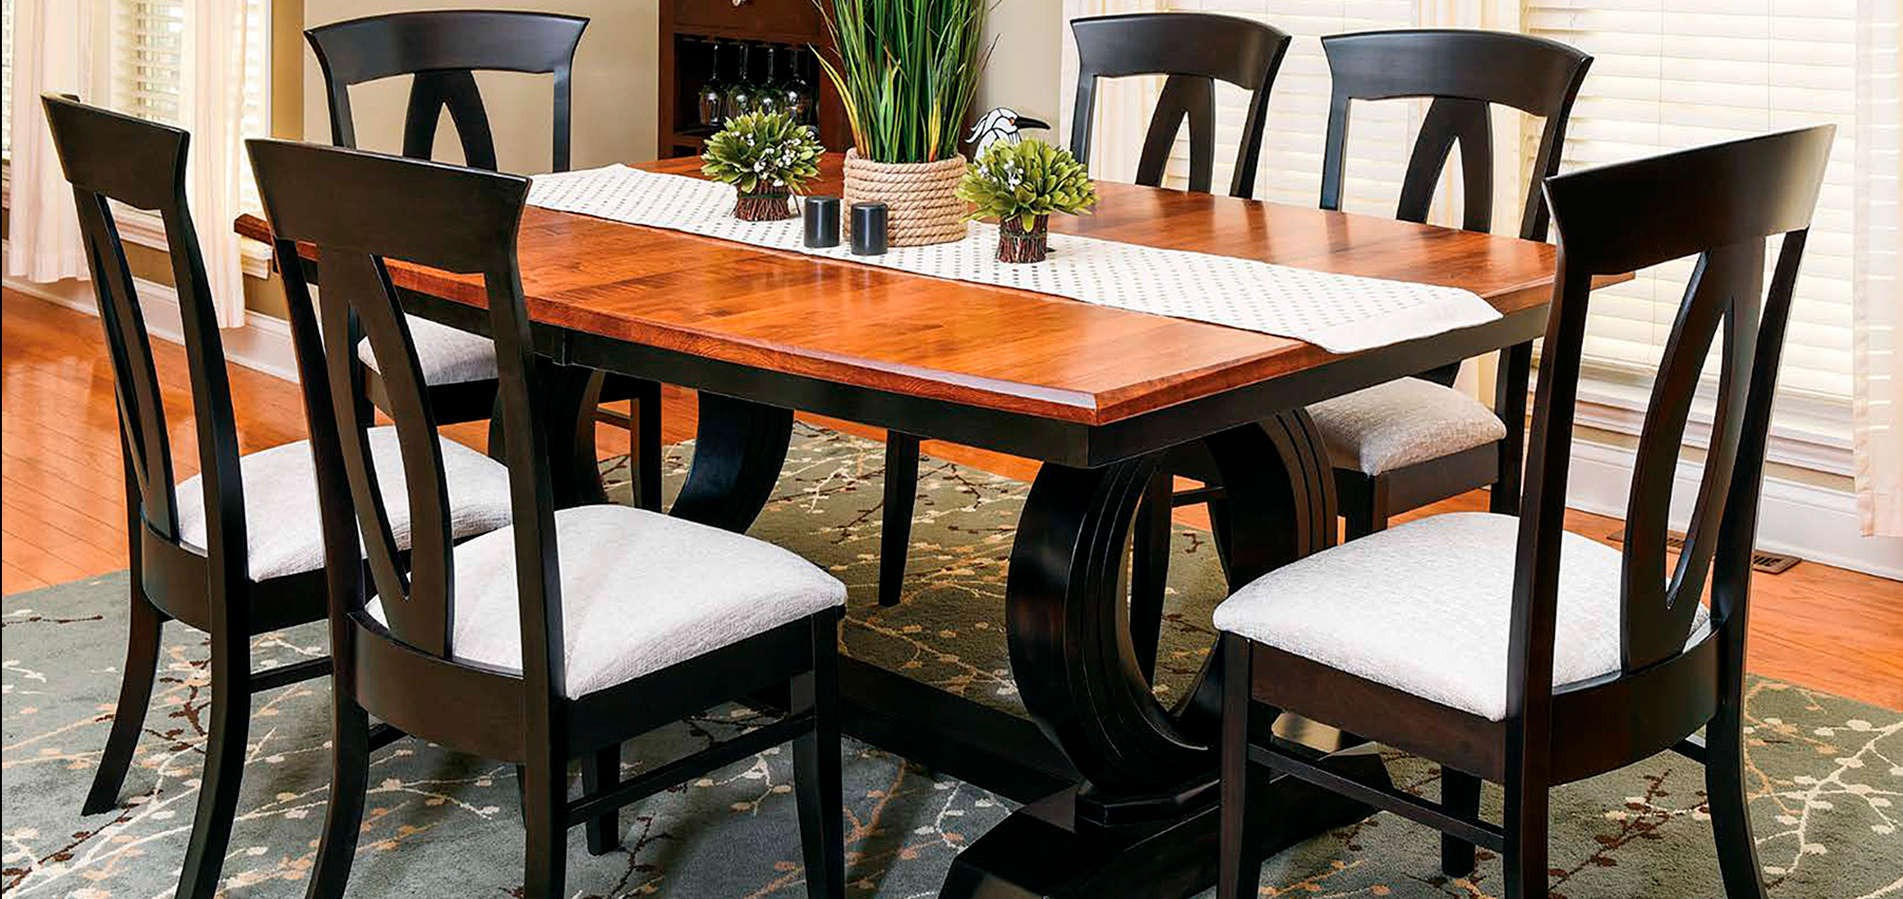 2017-west-point-woodworking-saratoga-dining-443-1903-x-899-2.jpg